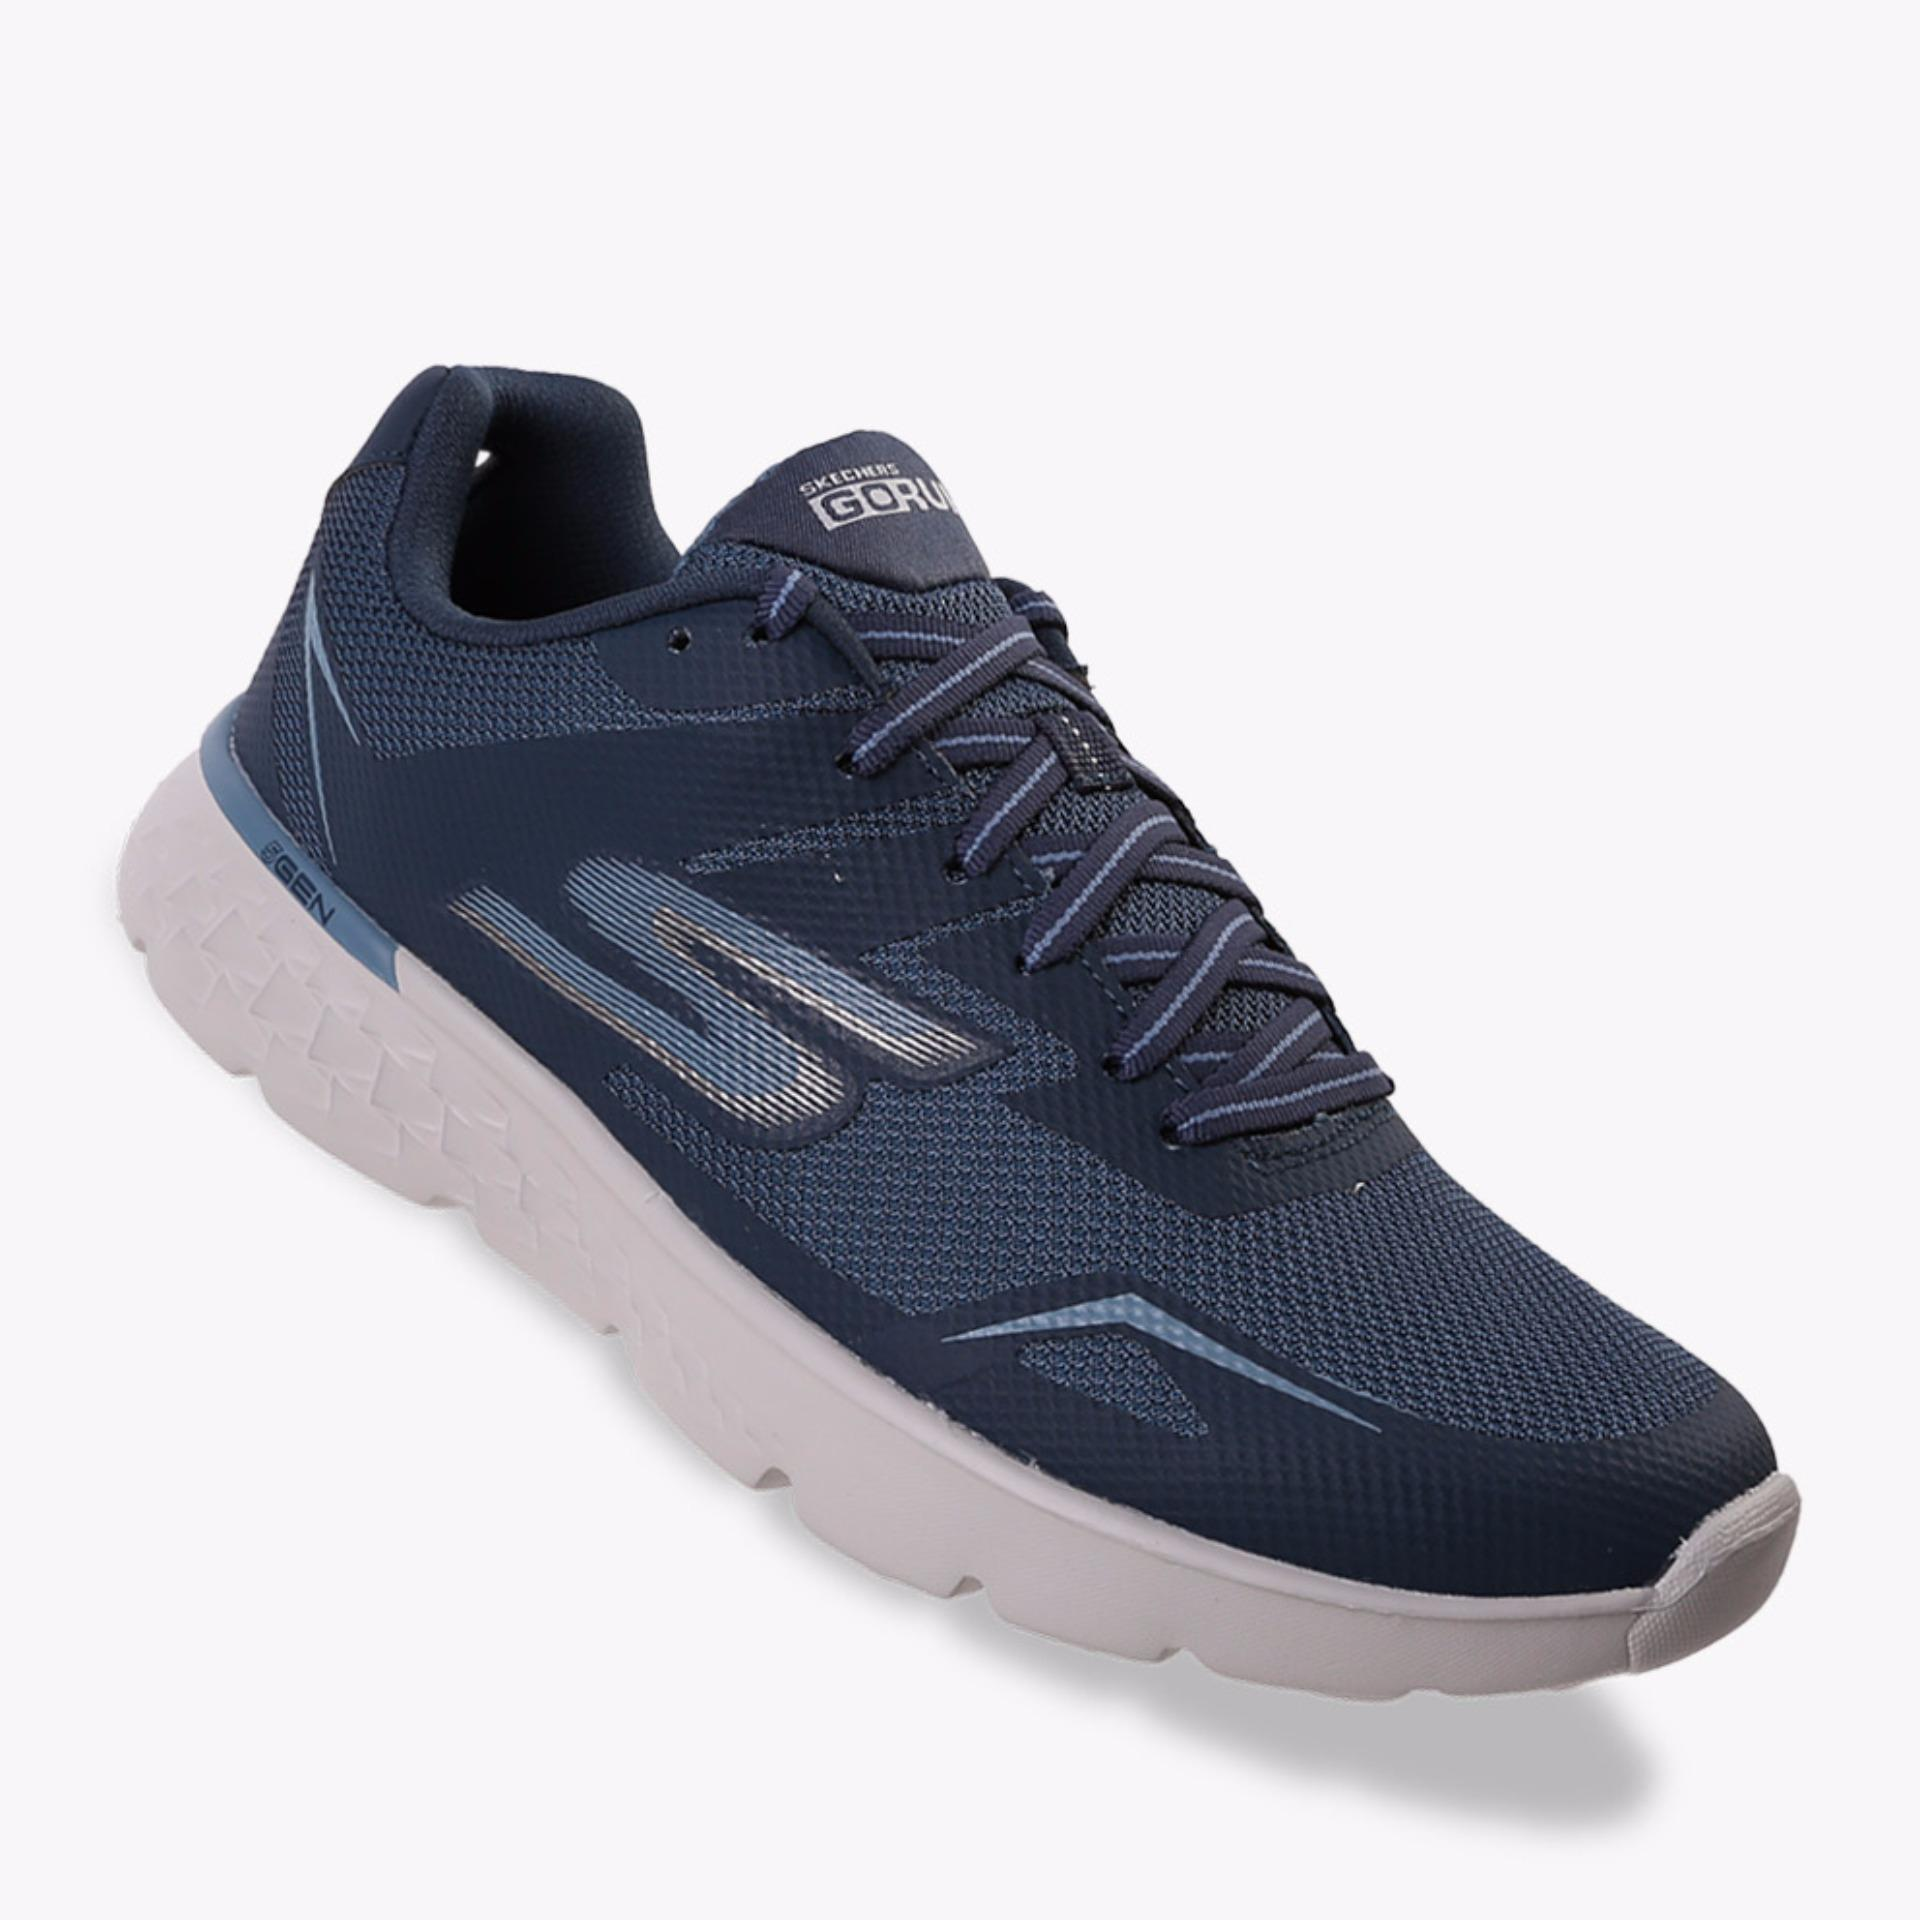 Jual Skechers Go Run 400 Men S Running Shoes Navy Indonesia Murah